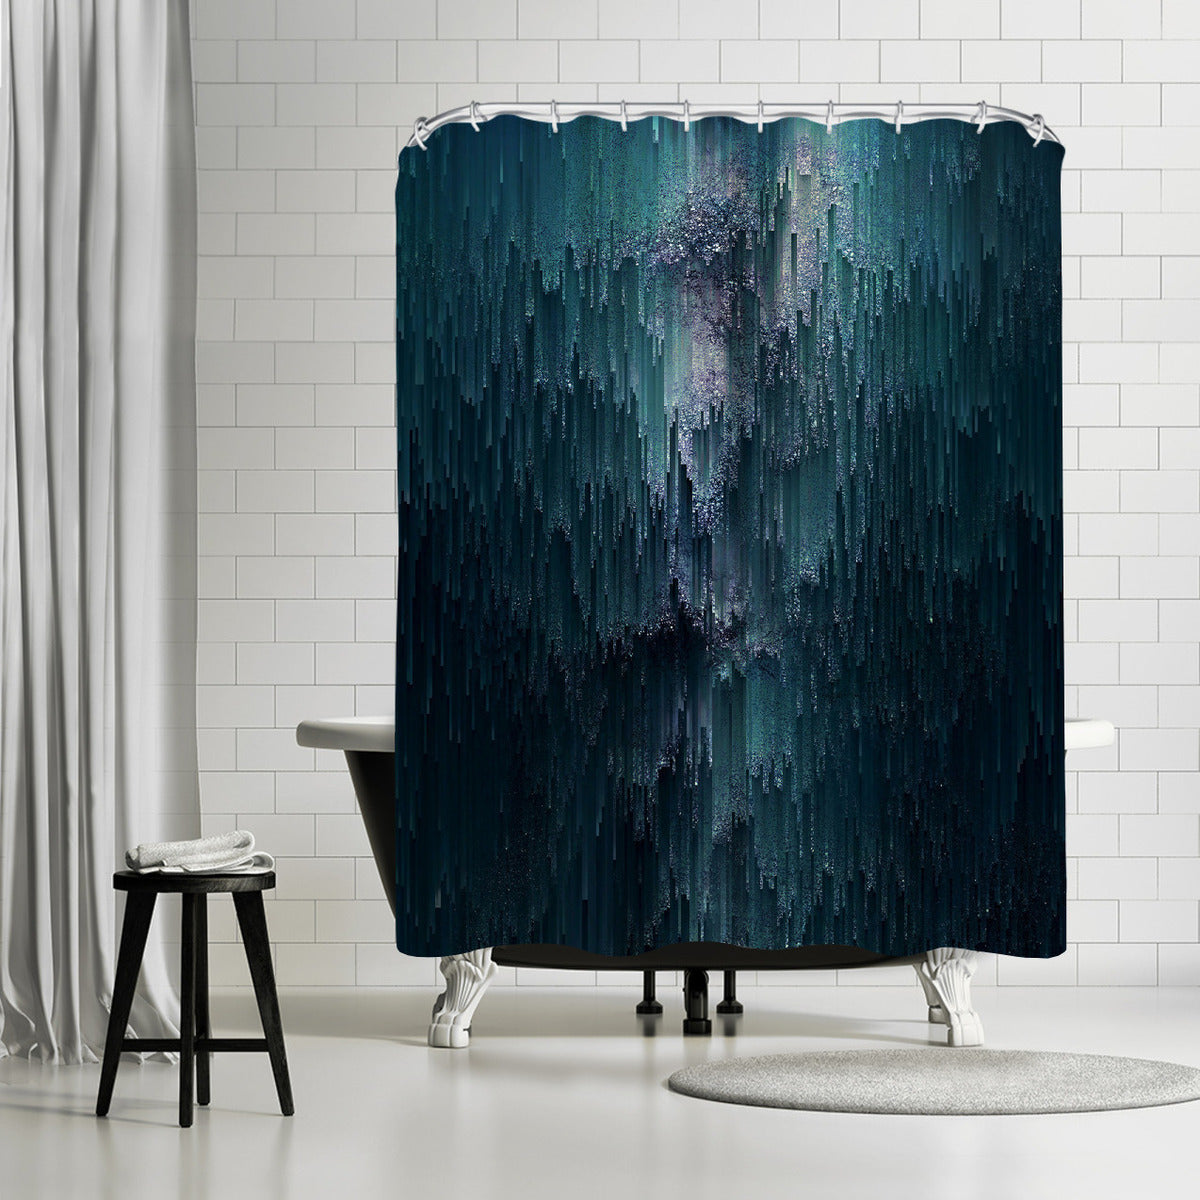 Iced Glitches by Emanuela Carratoni Shower Curtain -  - Americanflat